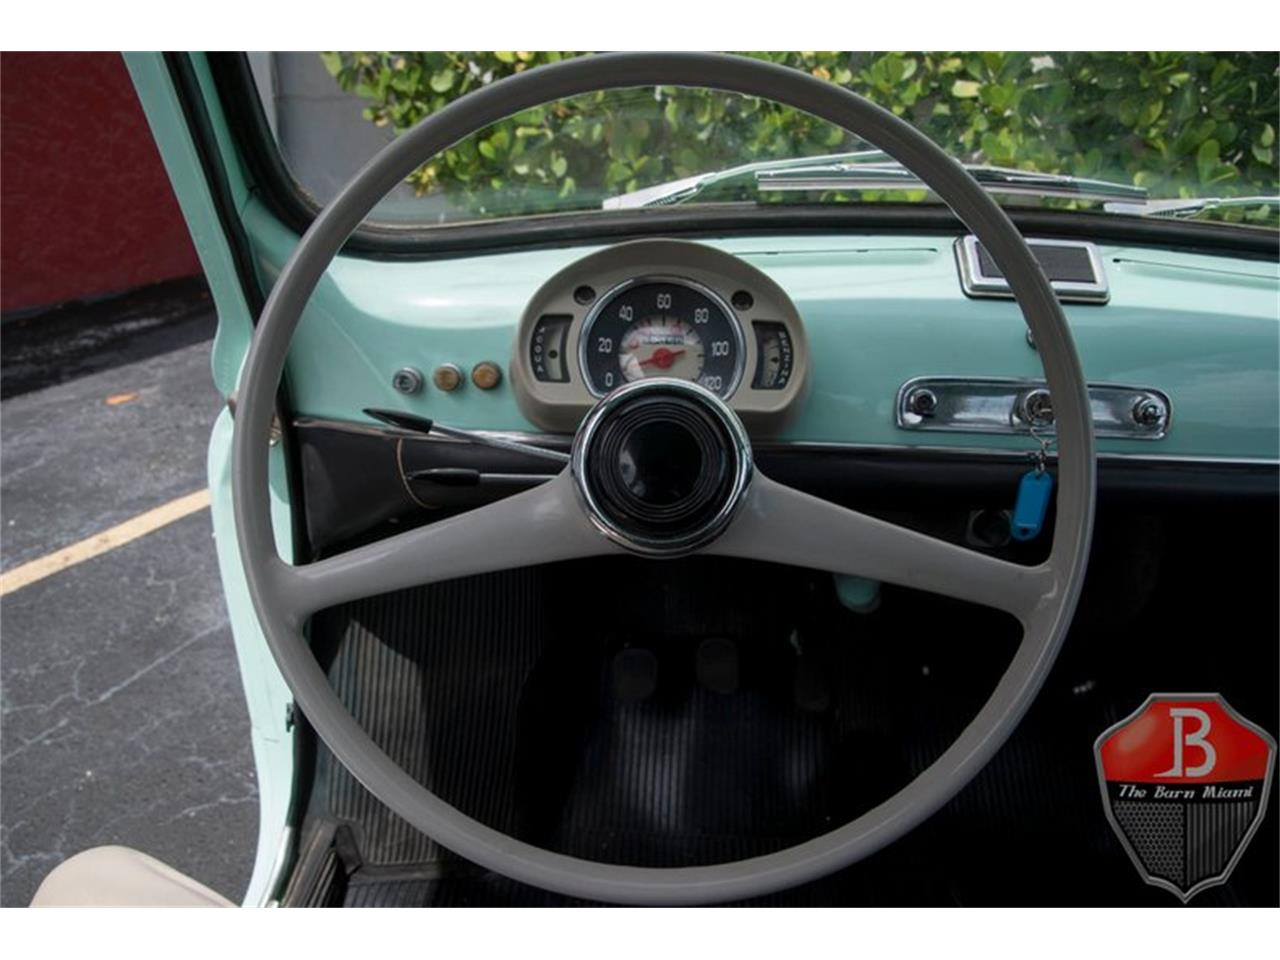 1963 Fiat 600 (CC-1256034) for sale in Miami, Florida